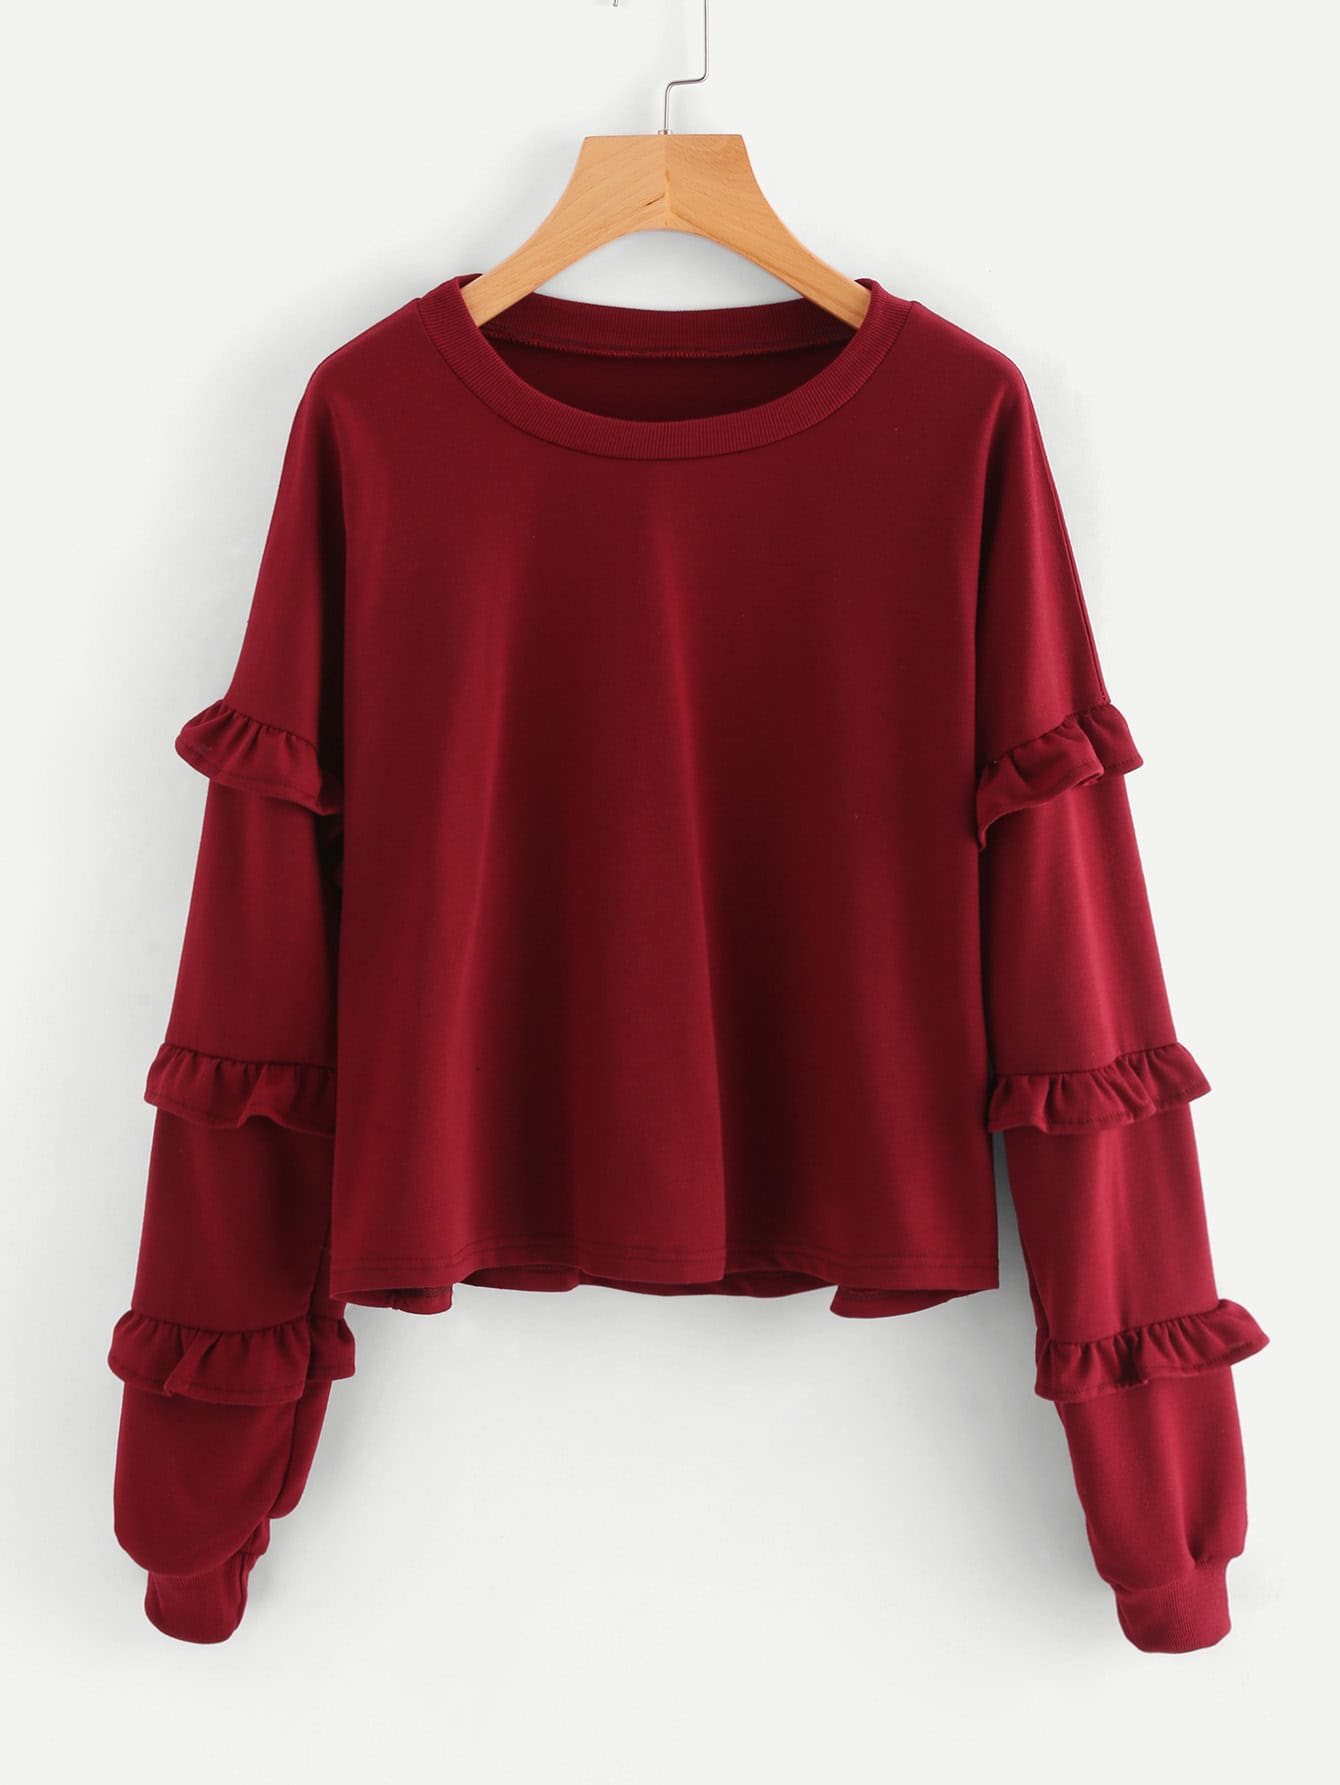 Tiered Frill Trim Drop Shoulder Sweatshirt